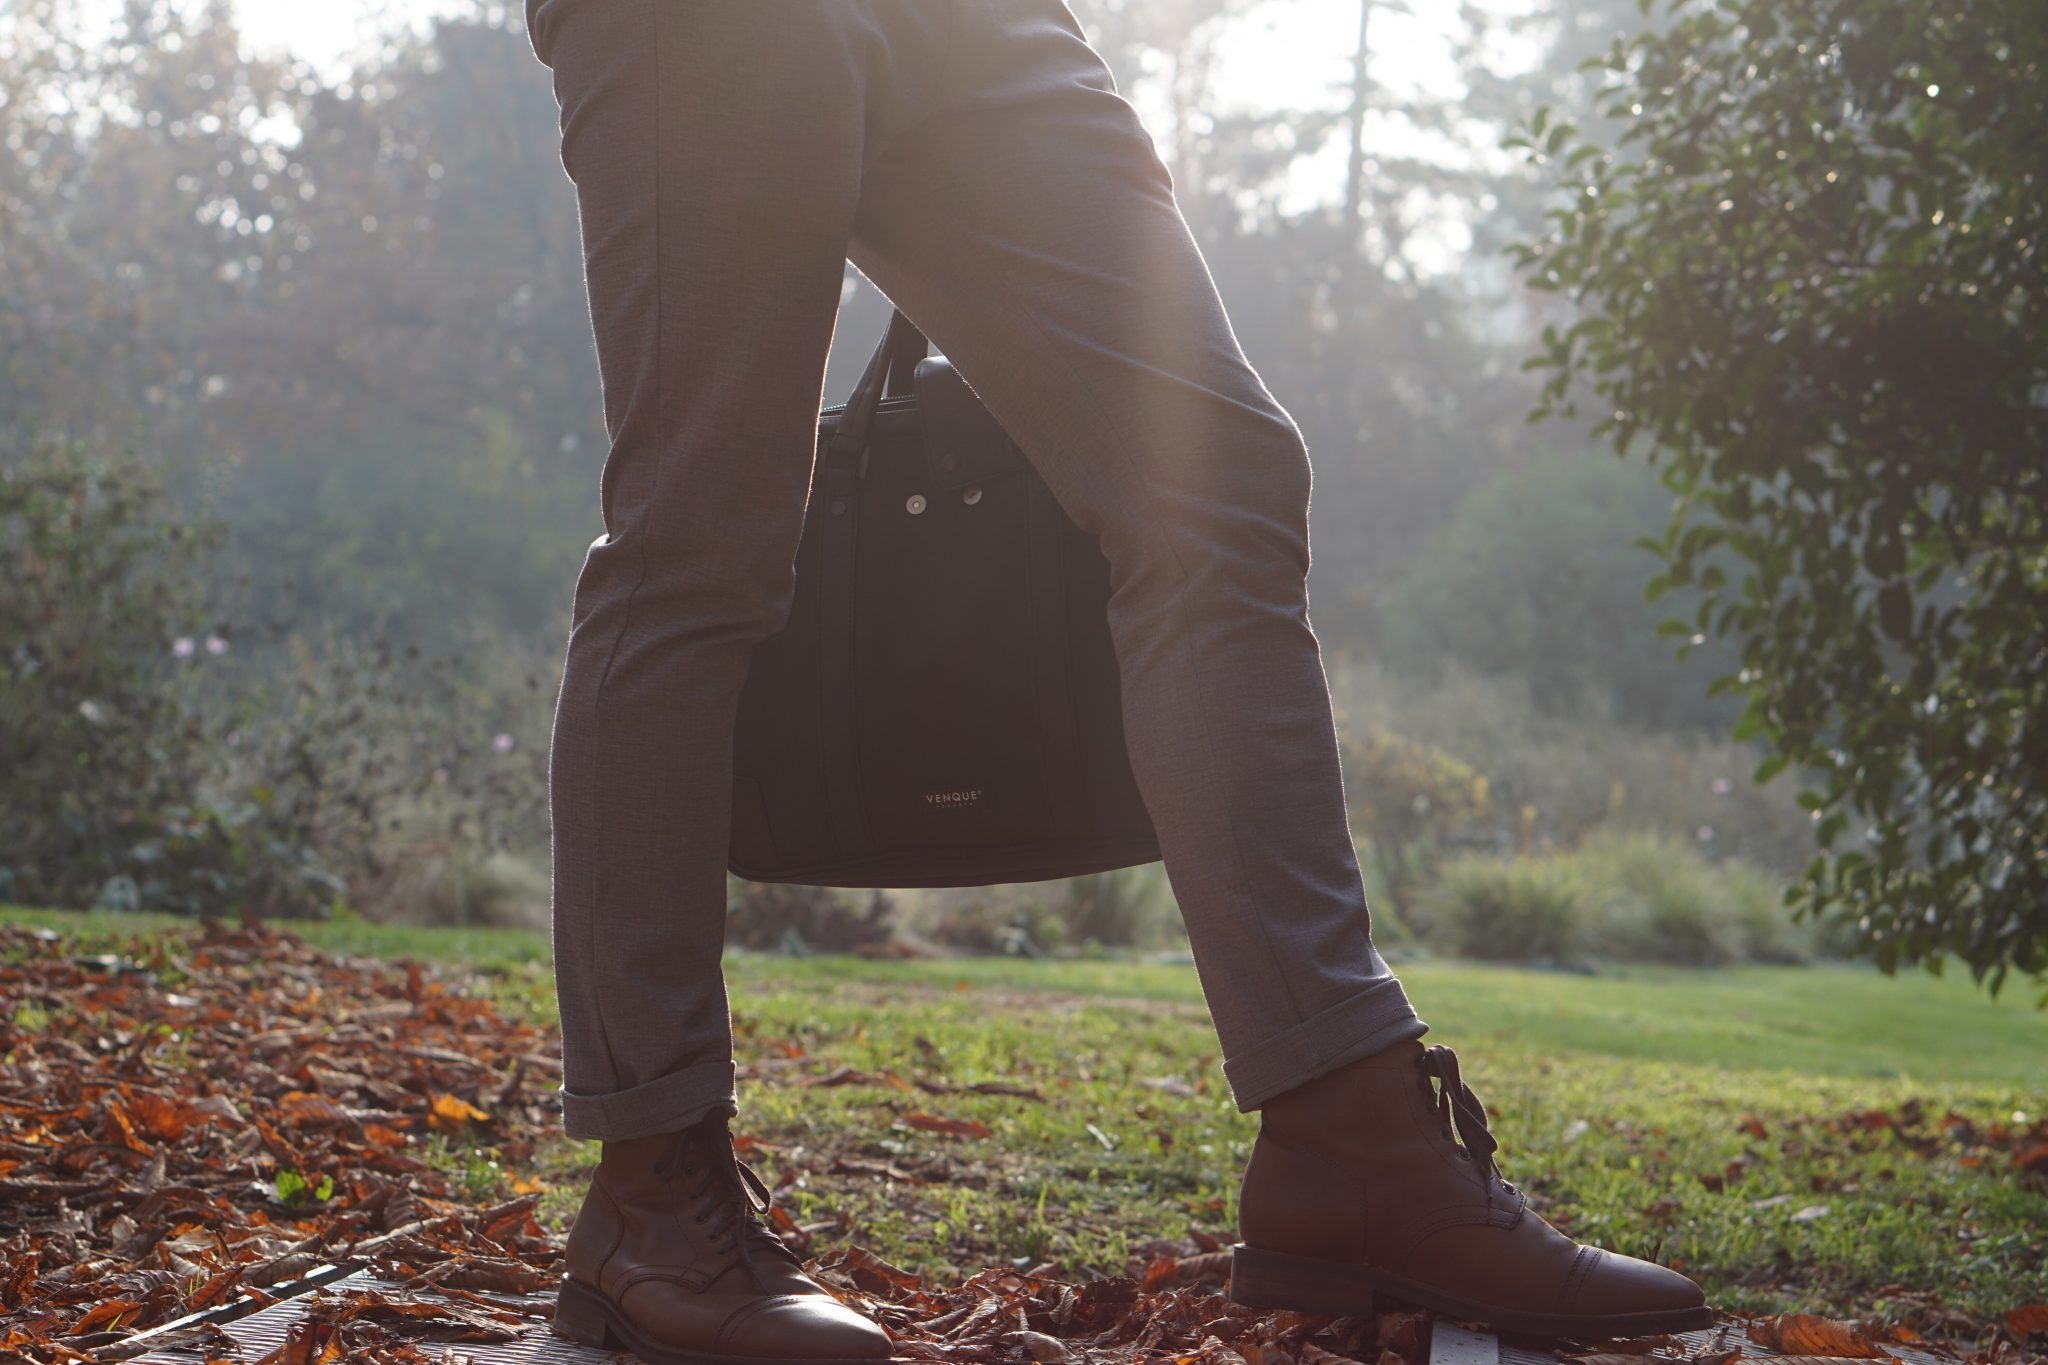 BetaBrand Dress Pant SweatPants. Best Pants For travelling? – Review